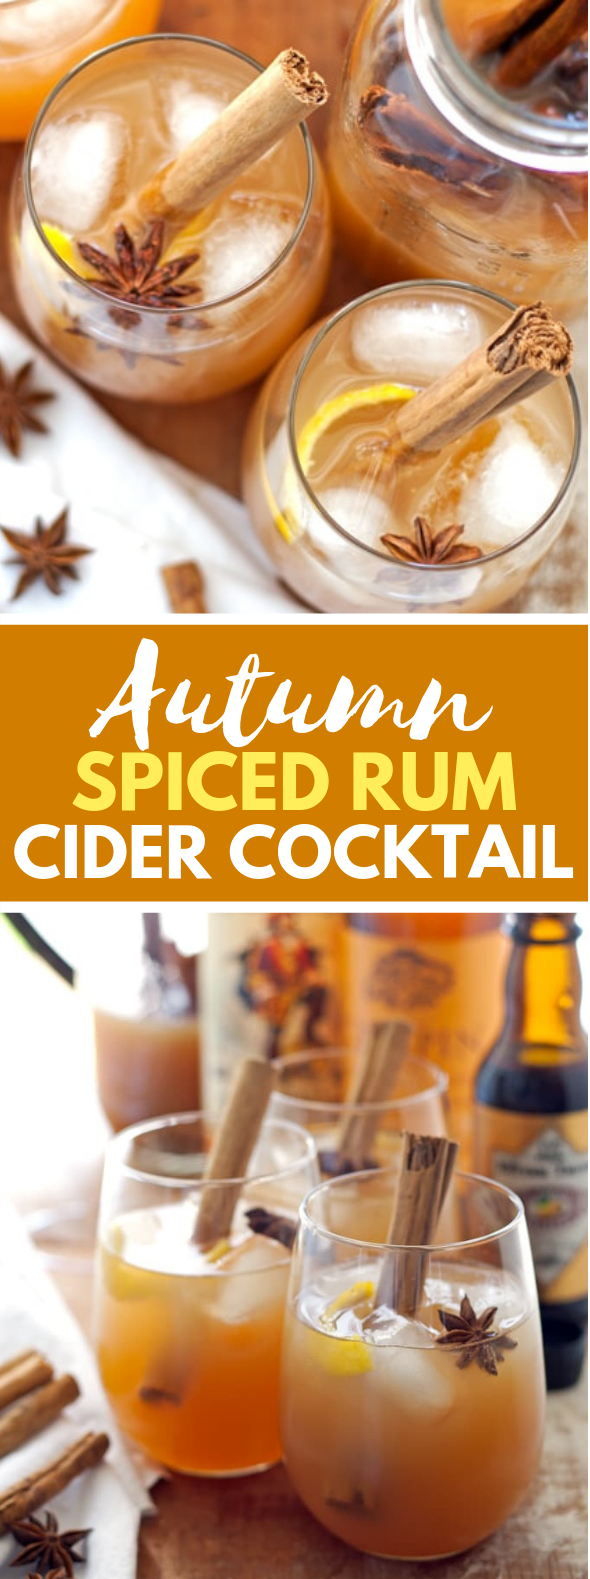 AUTUMN SPICED RUM CIDER COCKTAIL #drinks #fallcocktail